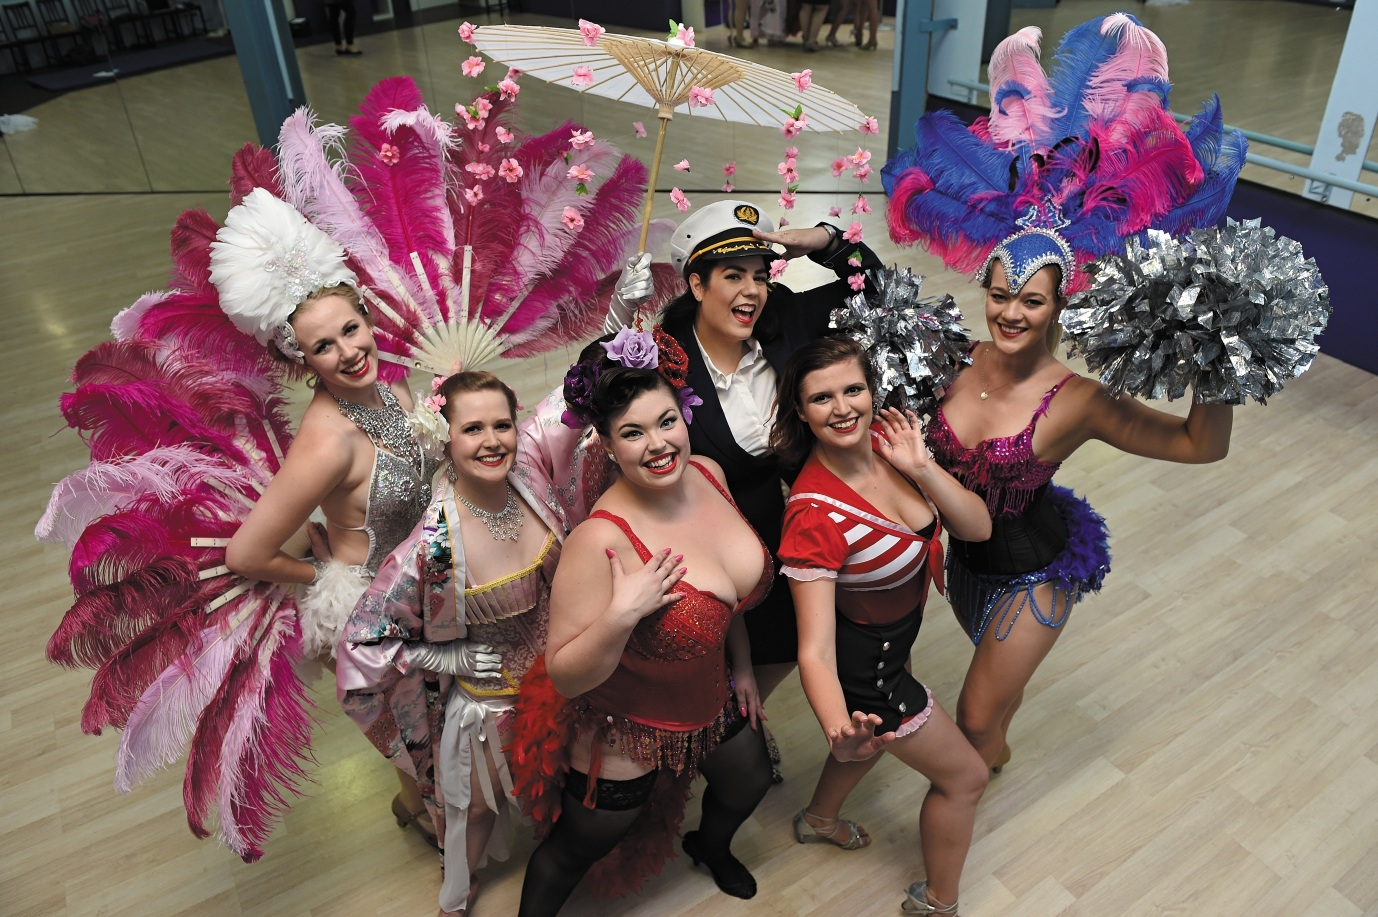 In the centre is Laura Young (Churchlands) as Sugar du Joure with, from left, Sarah Rutherford (Wungong) as Bambi, Keren Schlink (Wembley Downs) as Lola Moore, Sylvia Sippl (Scarborough) as Lucinda Panties, Clara Loveny (Perth) as Lady Pussyfoot and Emily Cairns (Swanbourne) as Candy Cheeks. Picture: Marcus Whisson  d435978